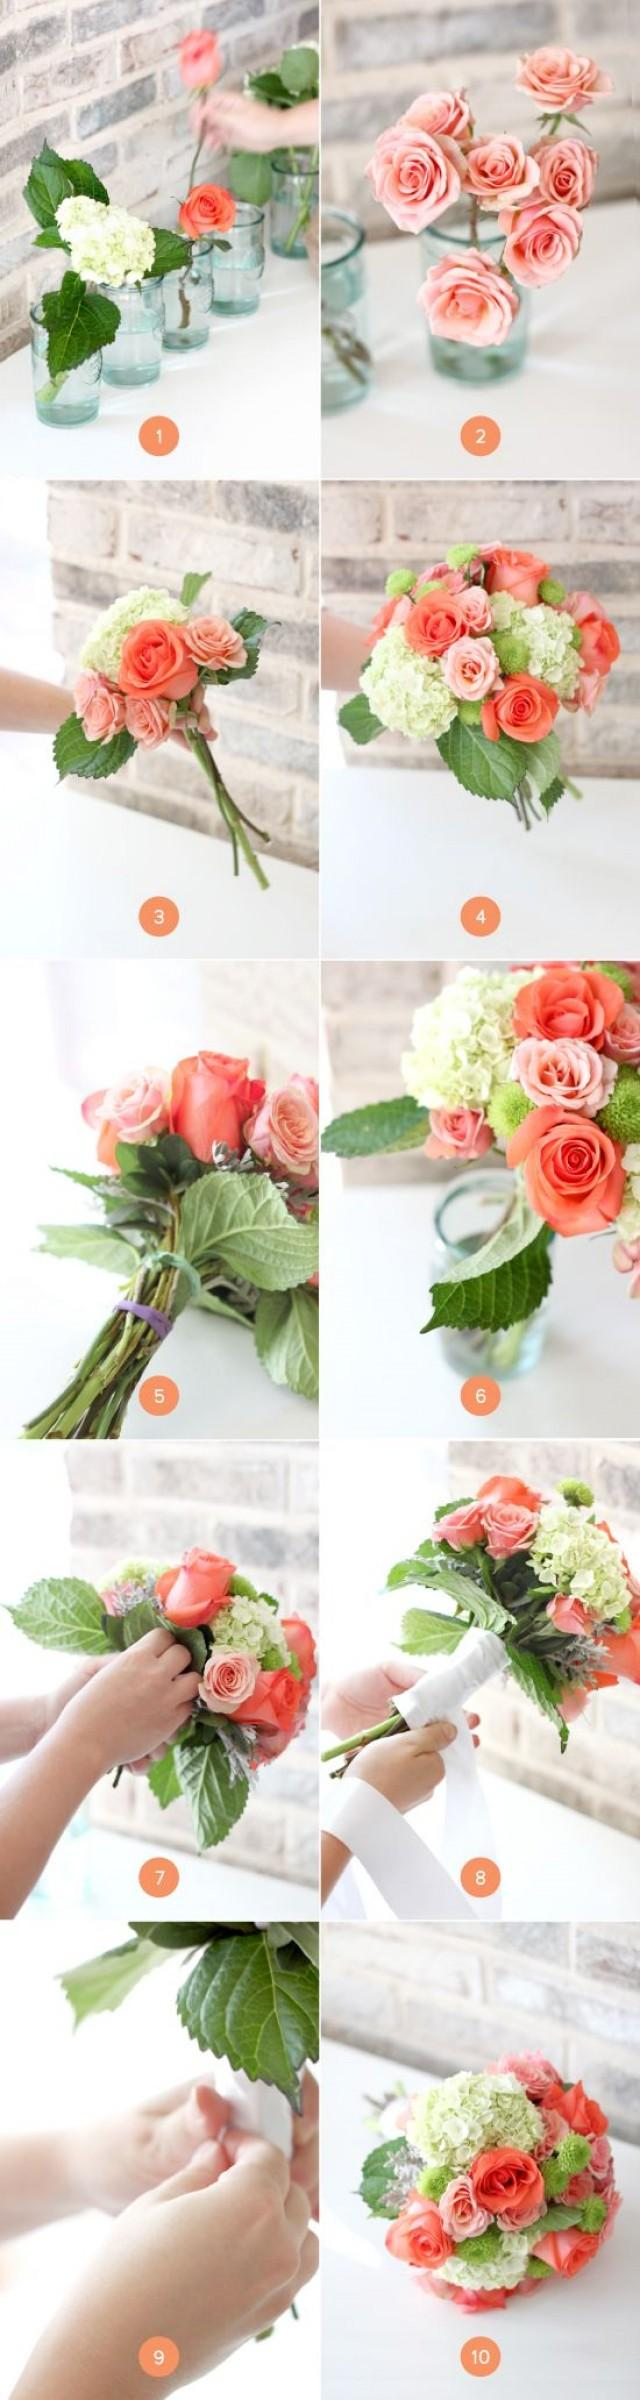 grocery store wedding flowers diy diy grocery bridal bouquet 2515428 weddbook 4628